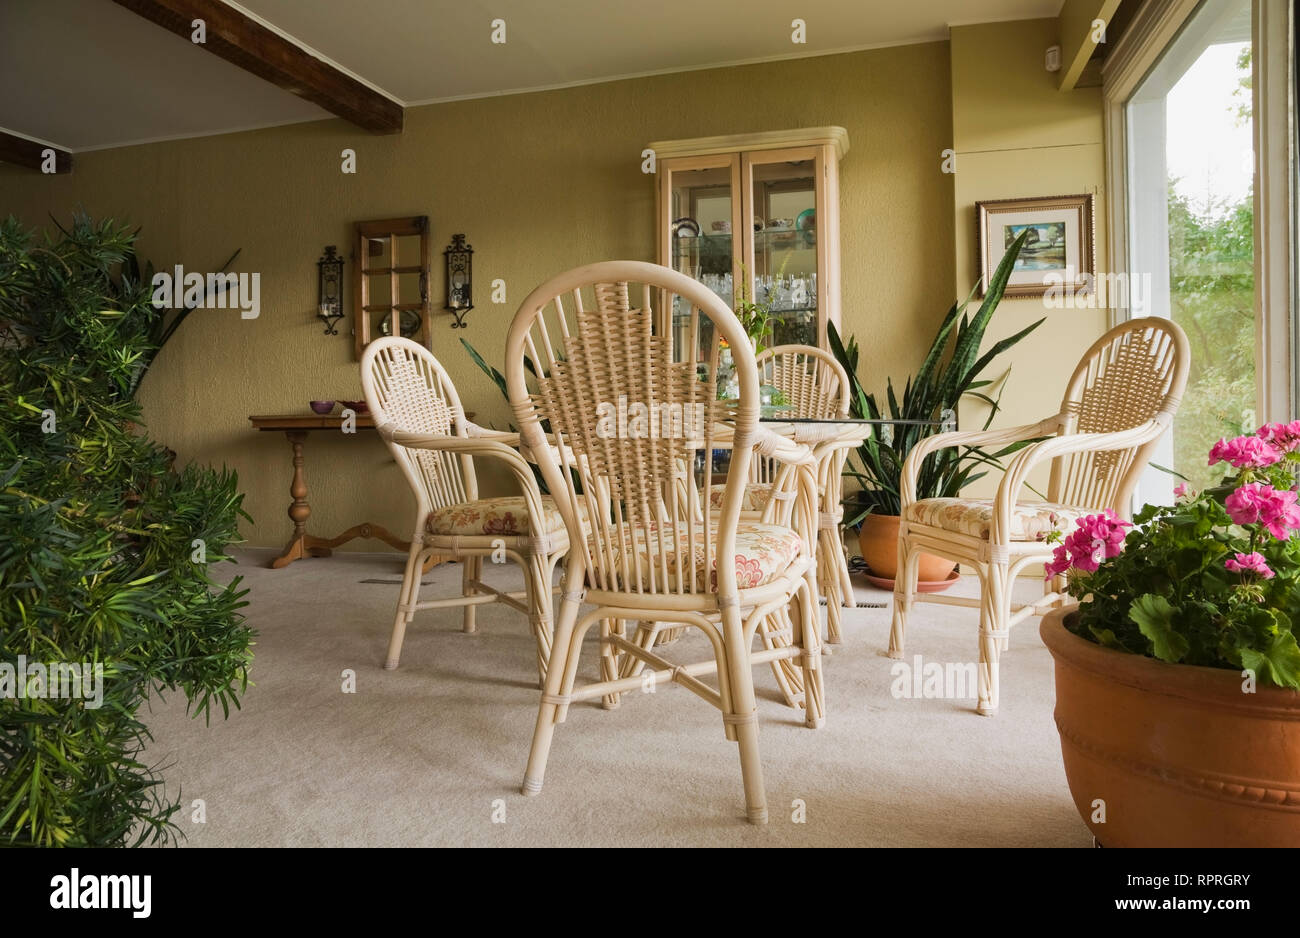 Wicker table, chairs and furnishings in the dining room of an old Canadiana and French manoir cottage style home - Stock Image